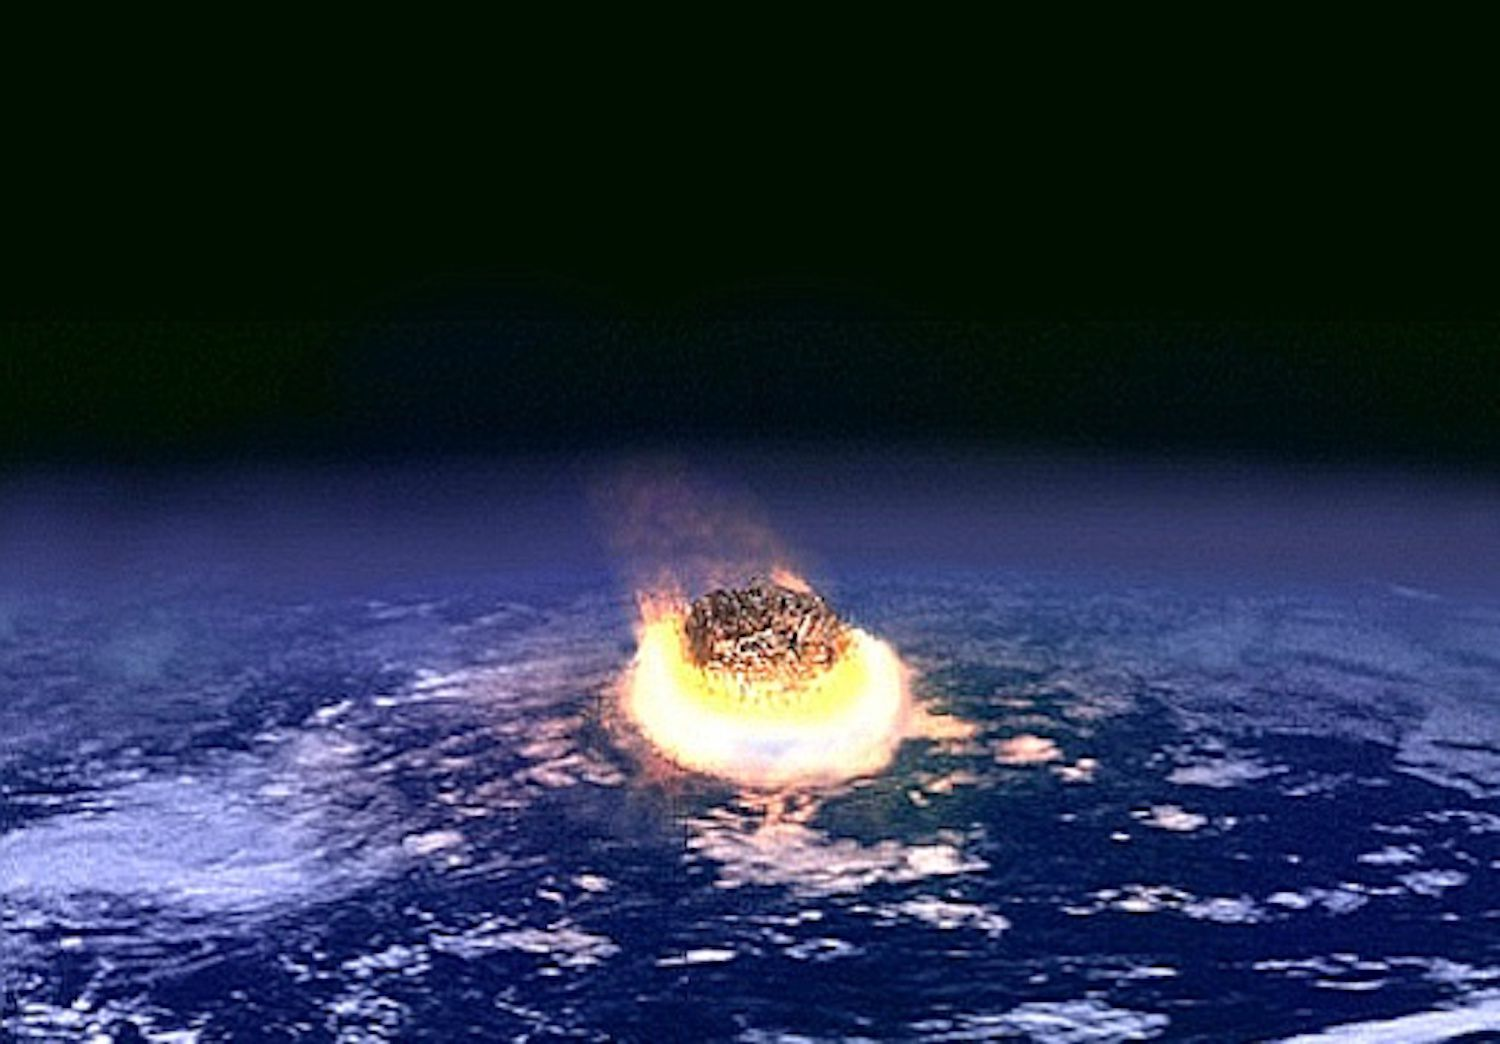 Artist rendering of the K/T Impact Event showing an asteroid smashing into Earth.